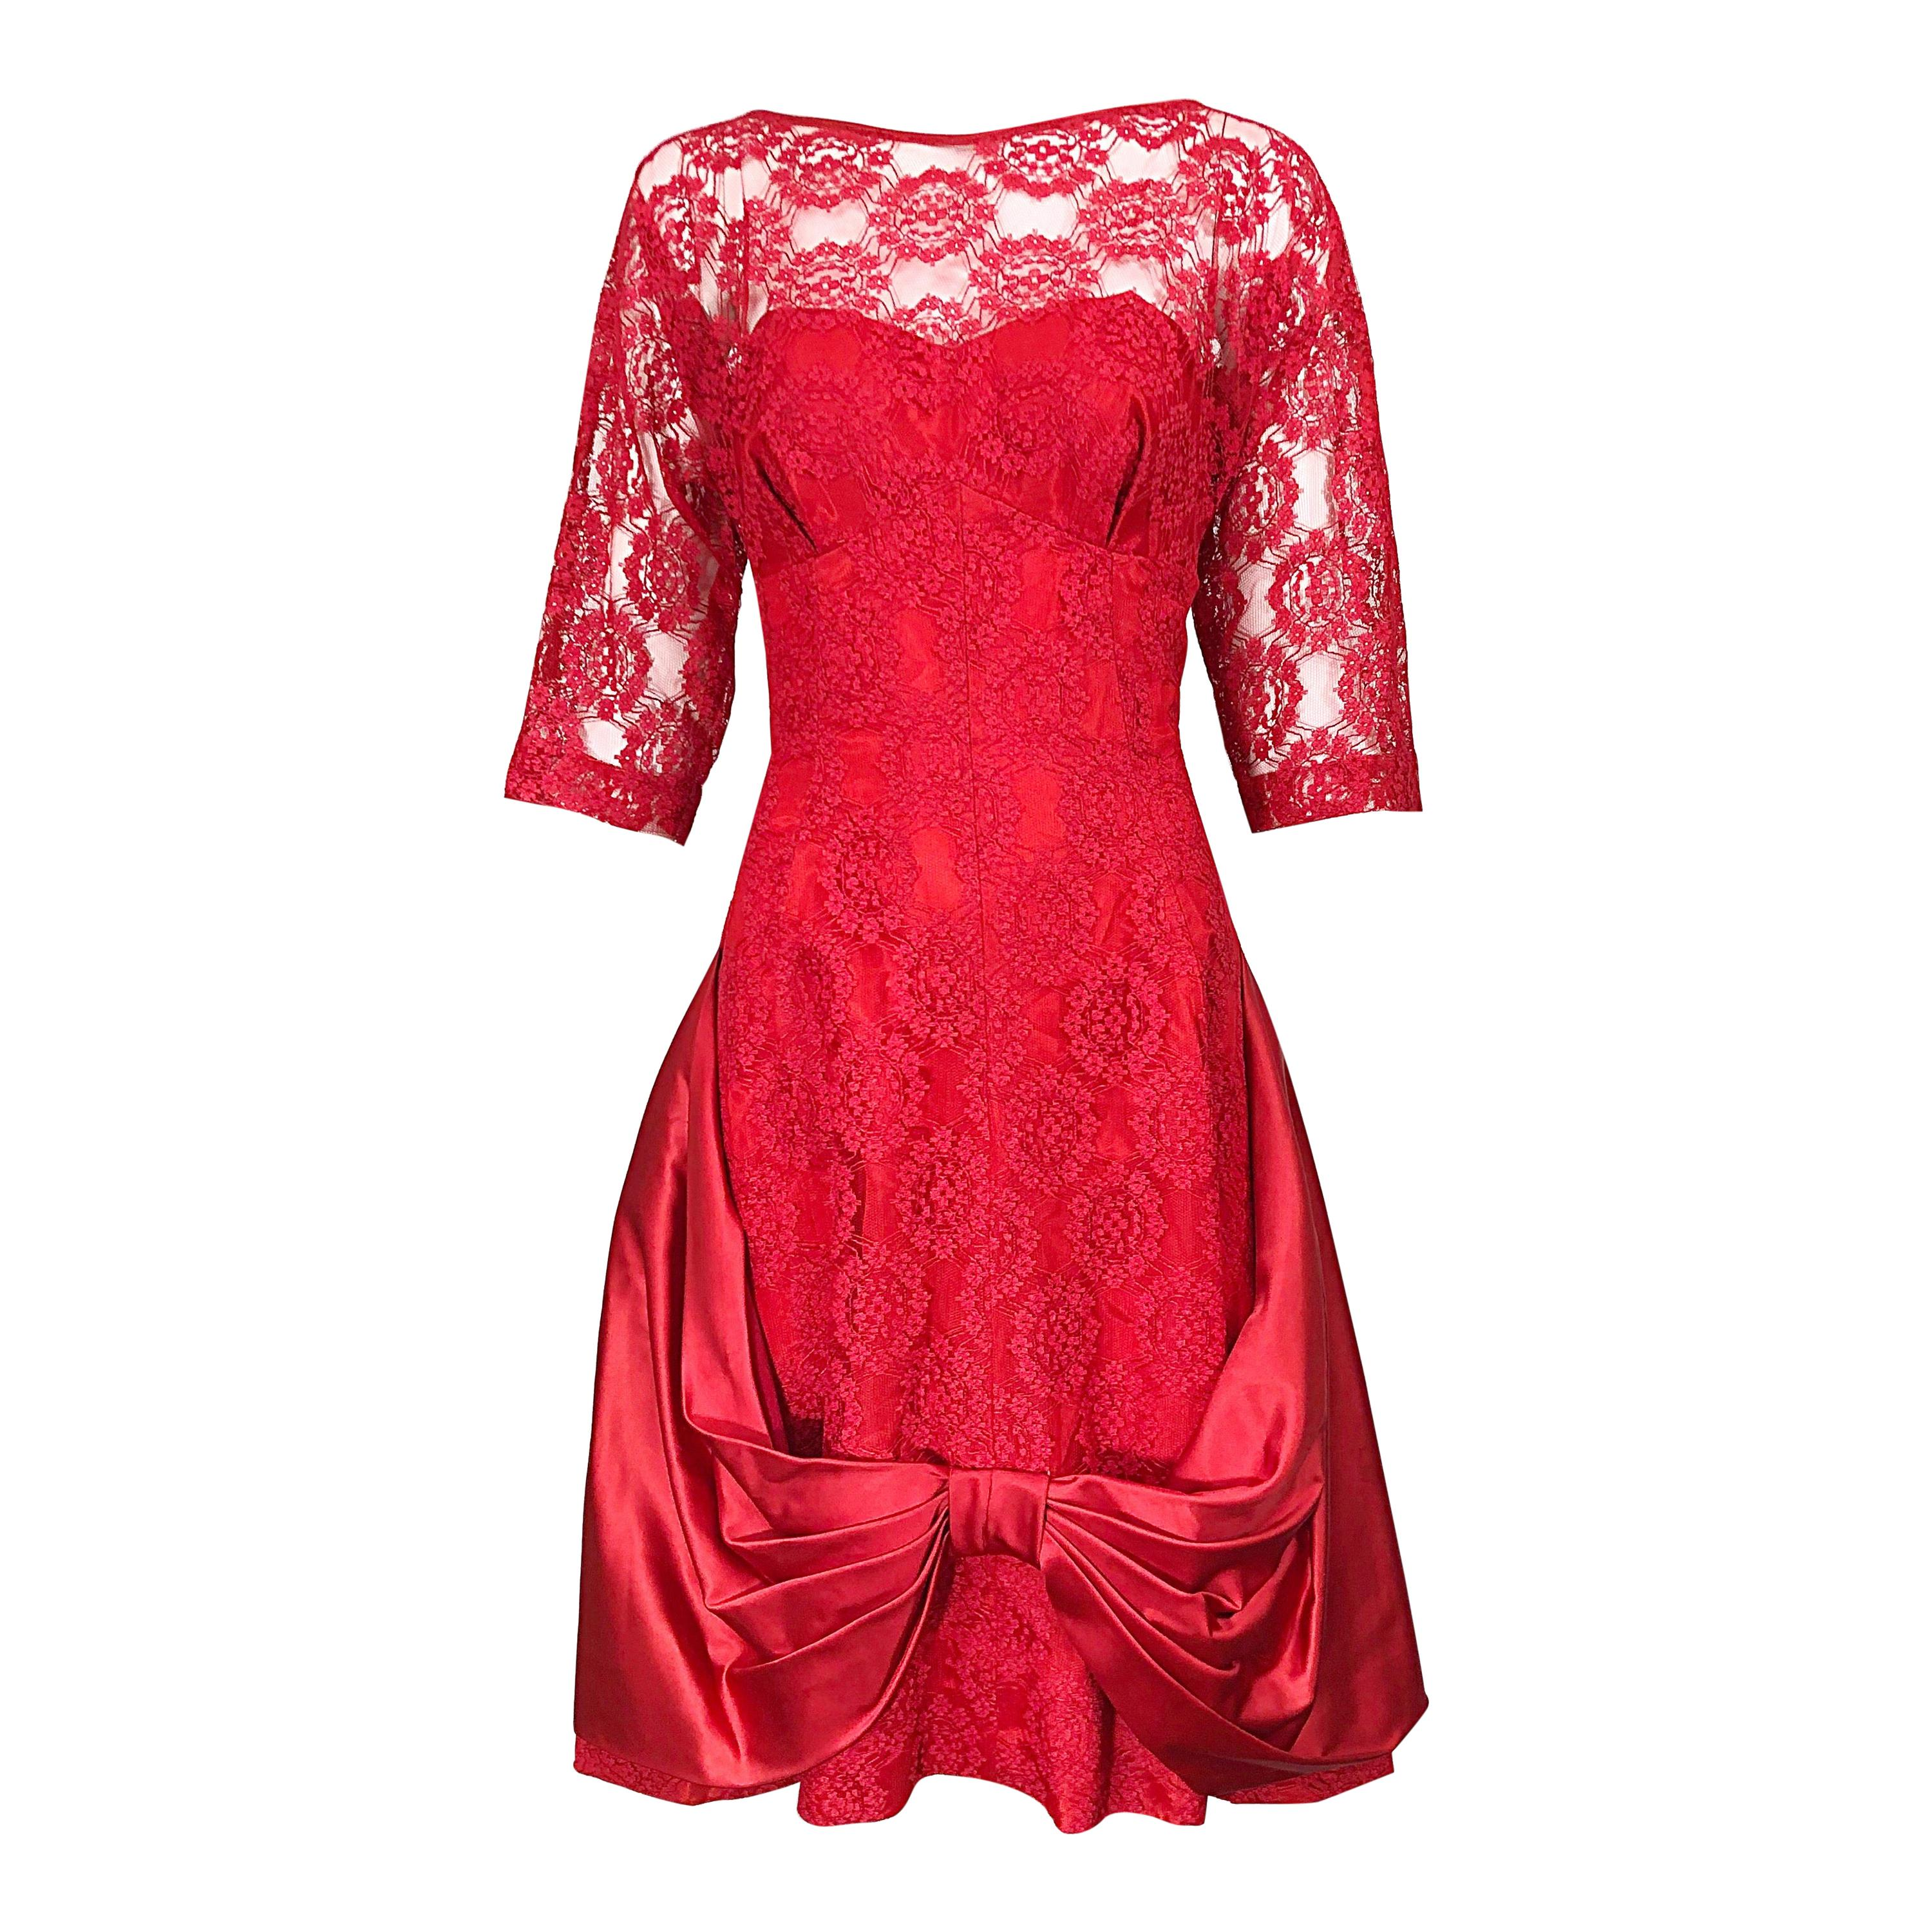 1950s Demi Couture Lips Stick Red Silk Lace 3/4 Sleeve Vintage 50s Dress